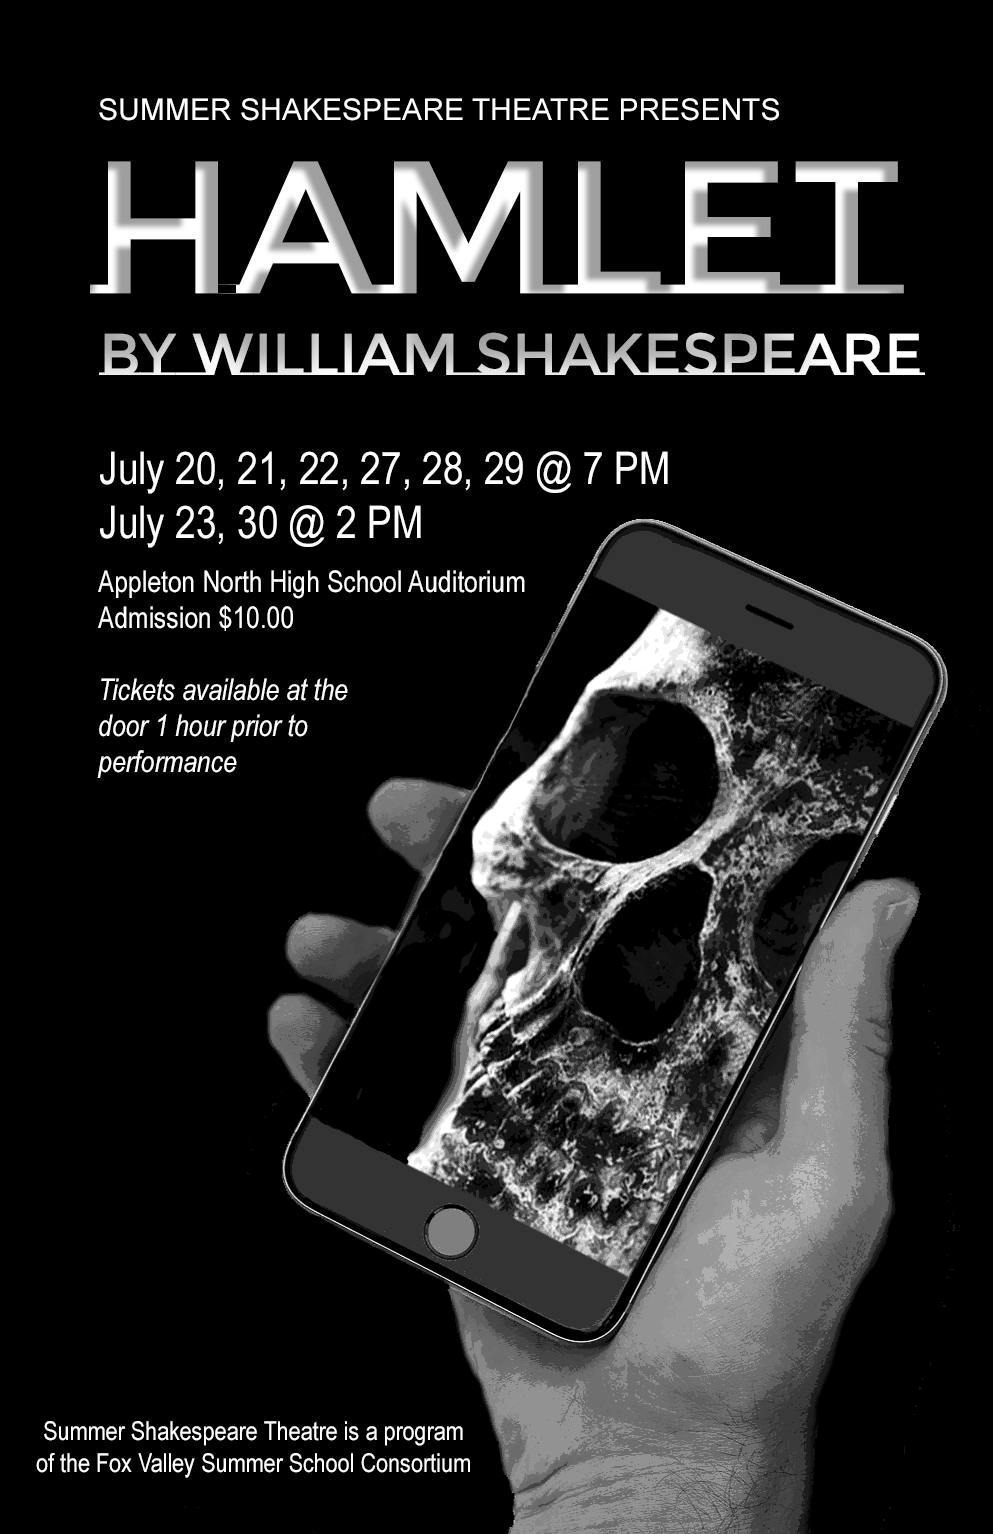 hamlet poster summer shakes 2017.png